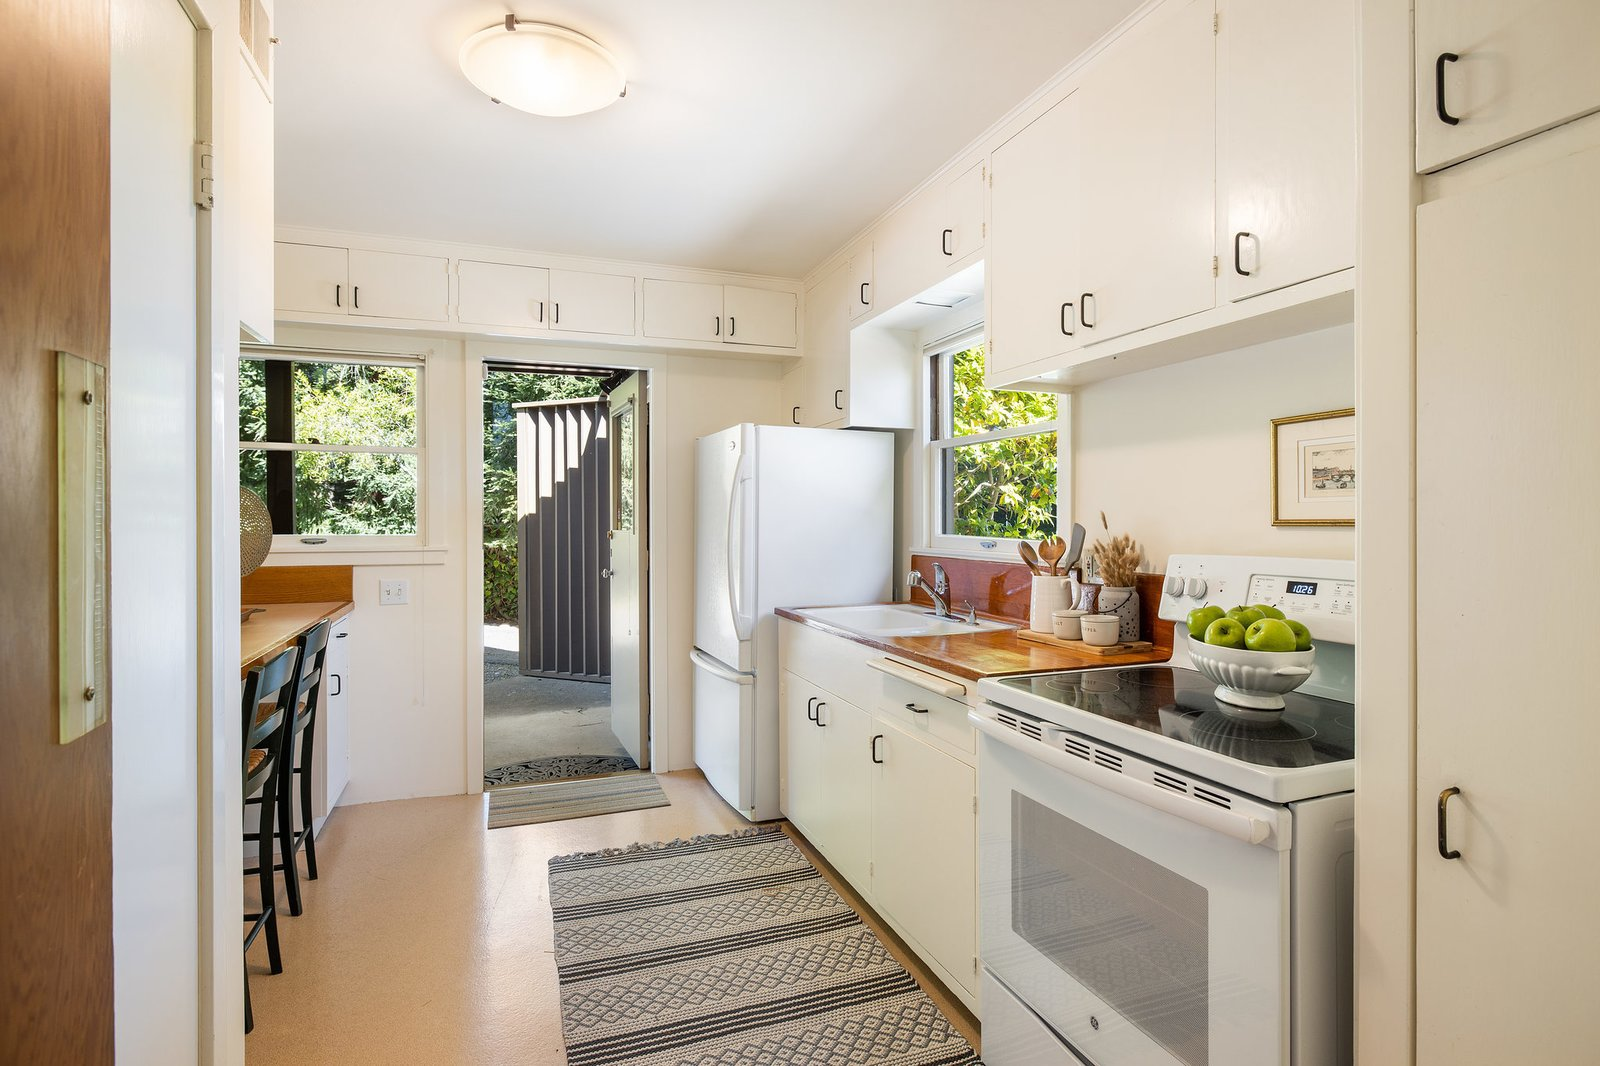 The kitchen features a full-sized range and refrigerator, as well as wraparound cabinetry.  Photo 20 of 21 in An Impeccable Midcentury Compound in the Berkeley Hills Wants $3.4M